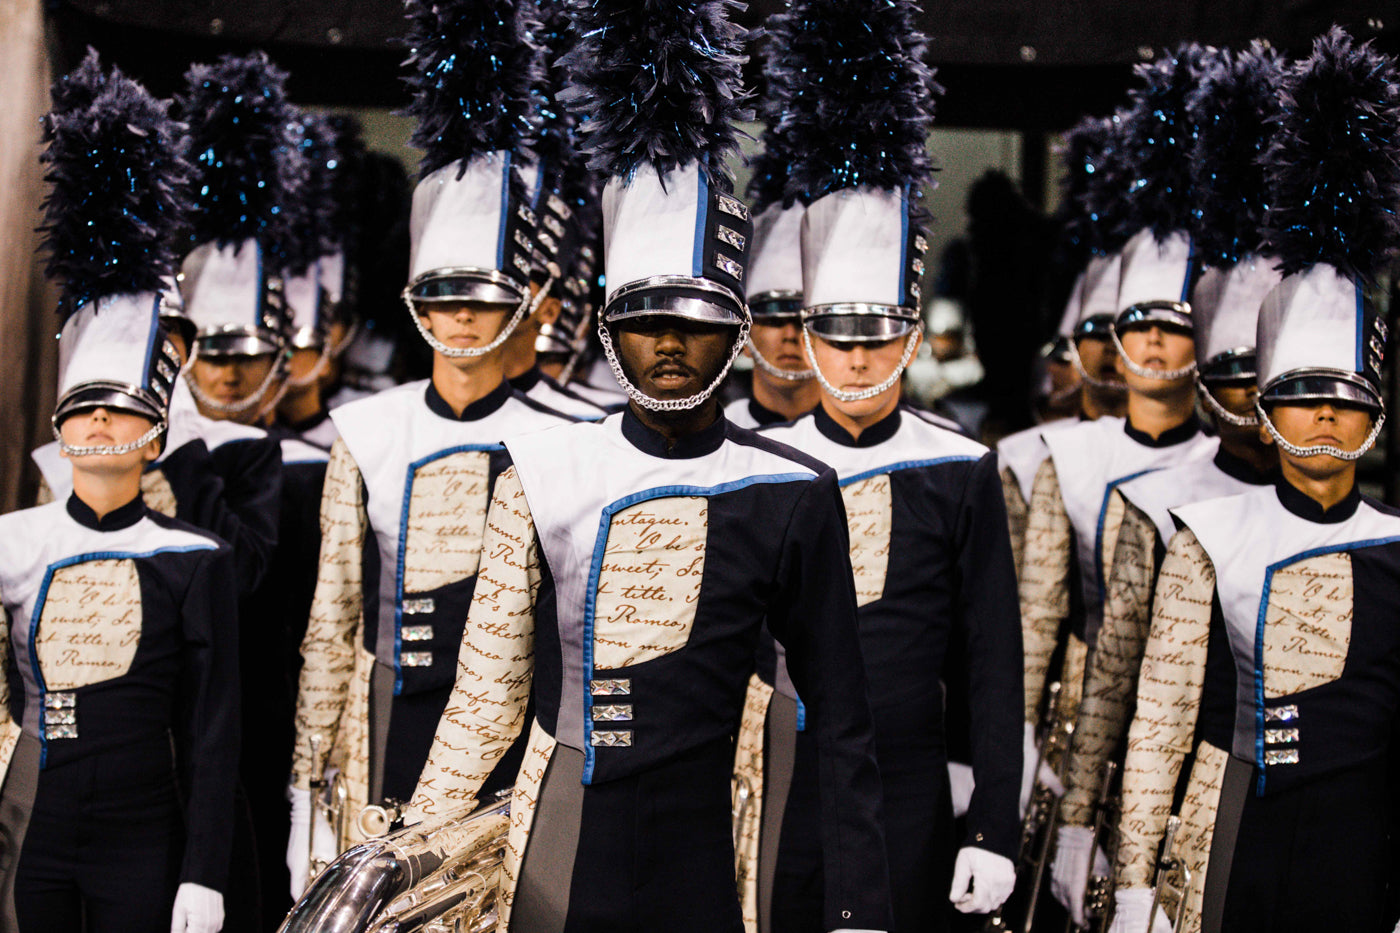 Music and Marching DCI 2017 - Lot Riot Blog